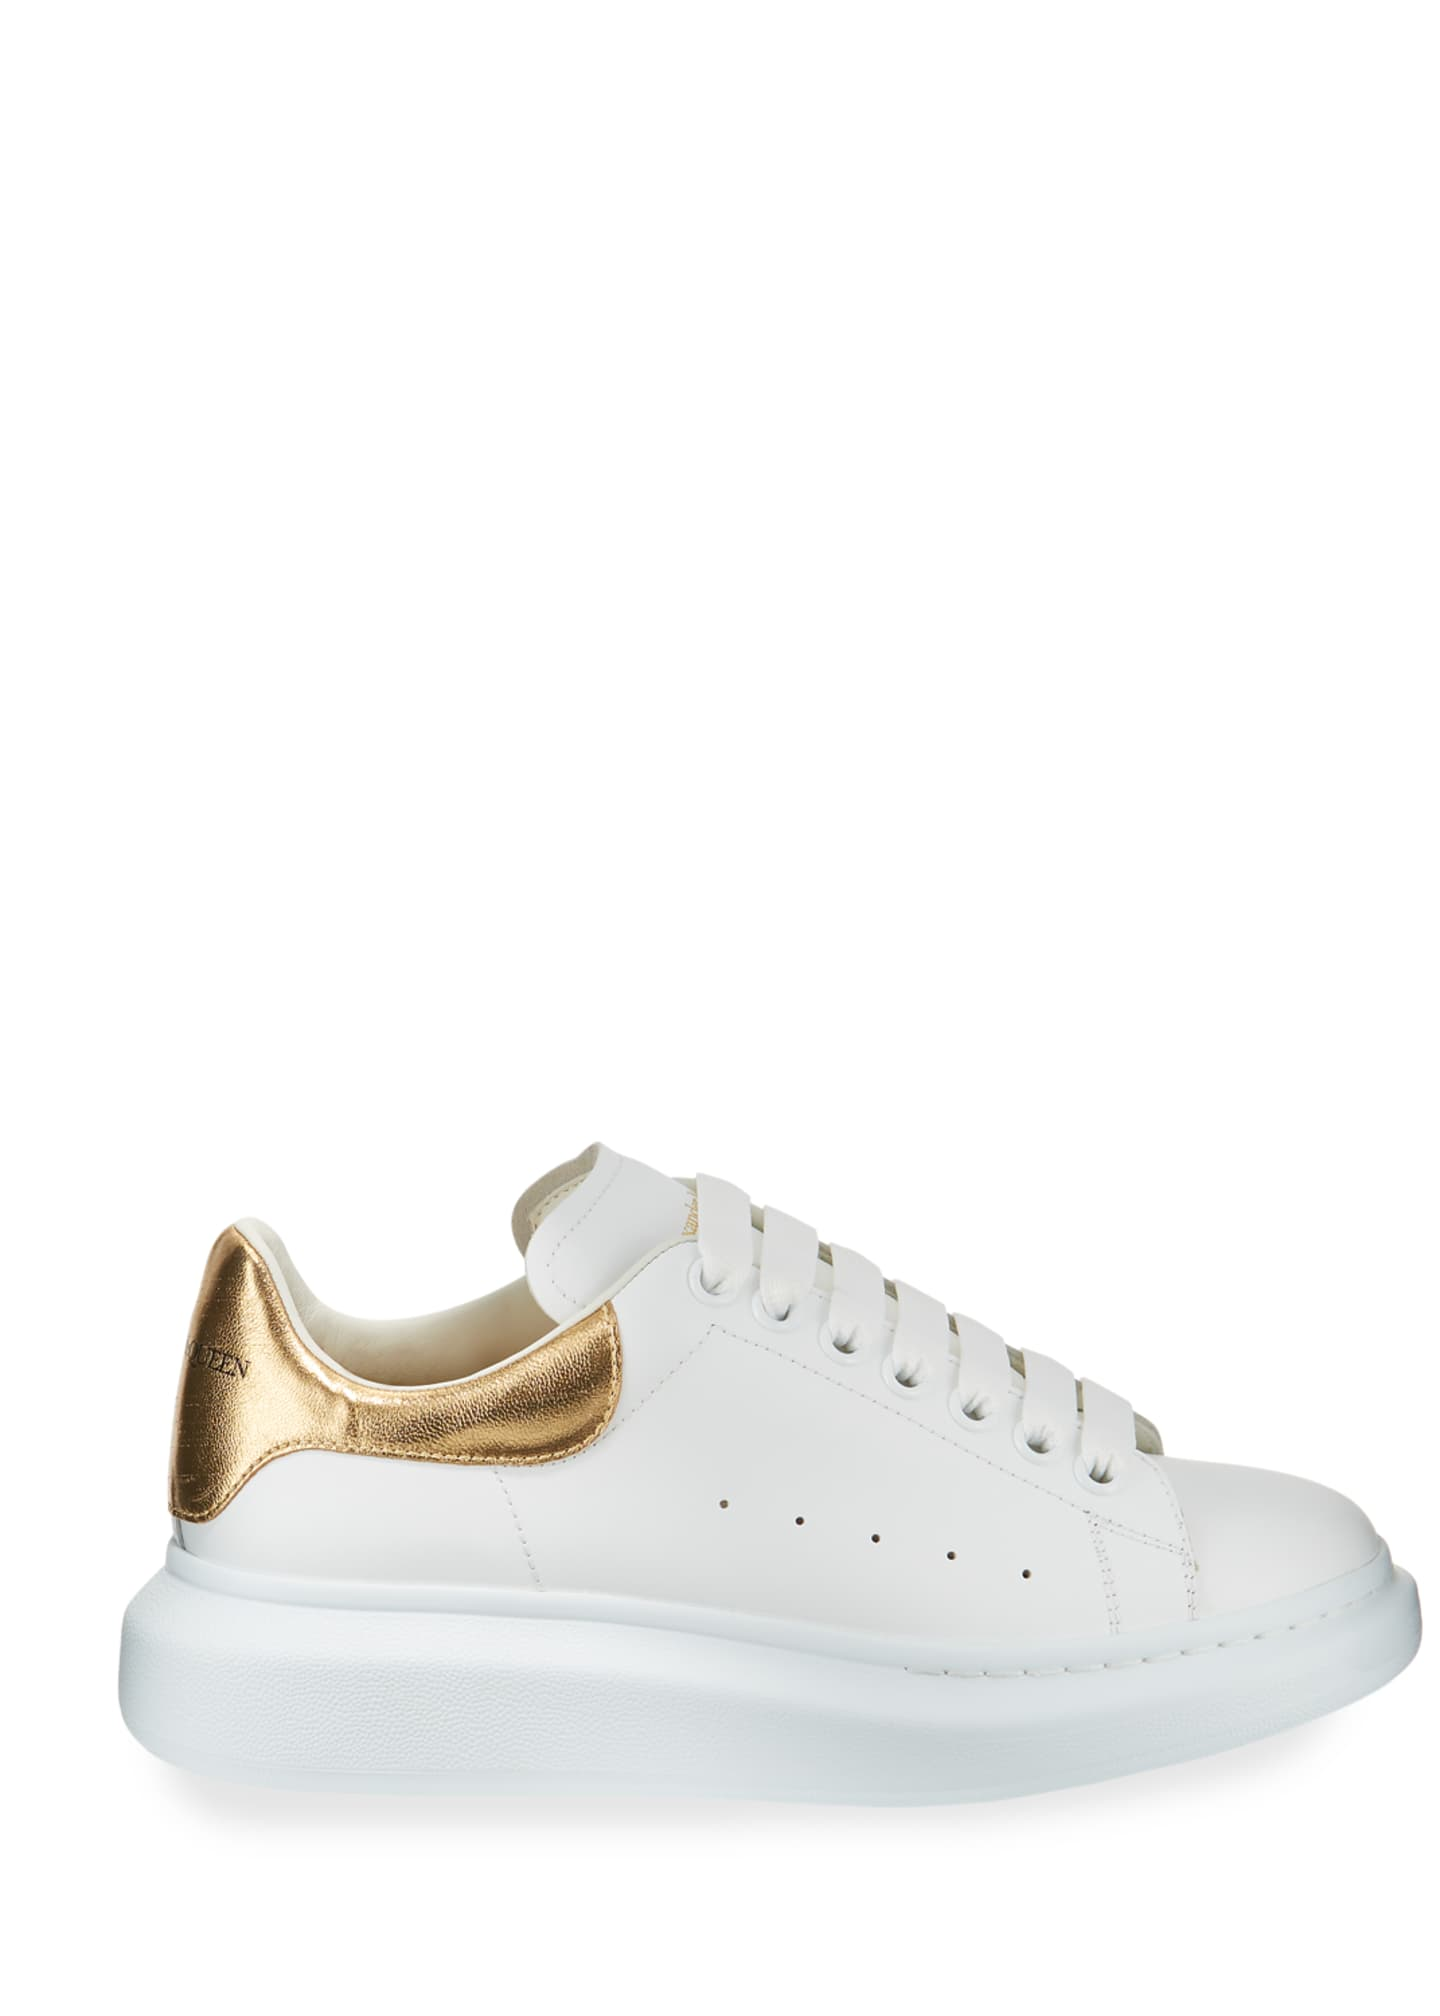 Image 3 of 3: Men's Leather Platform Sneakers with Metallic Back